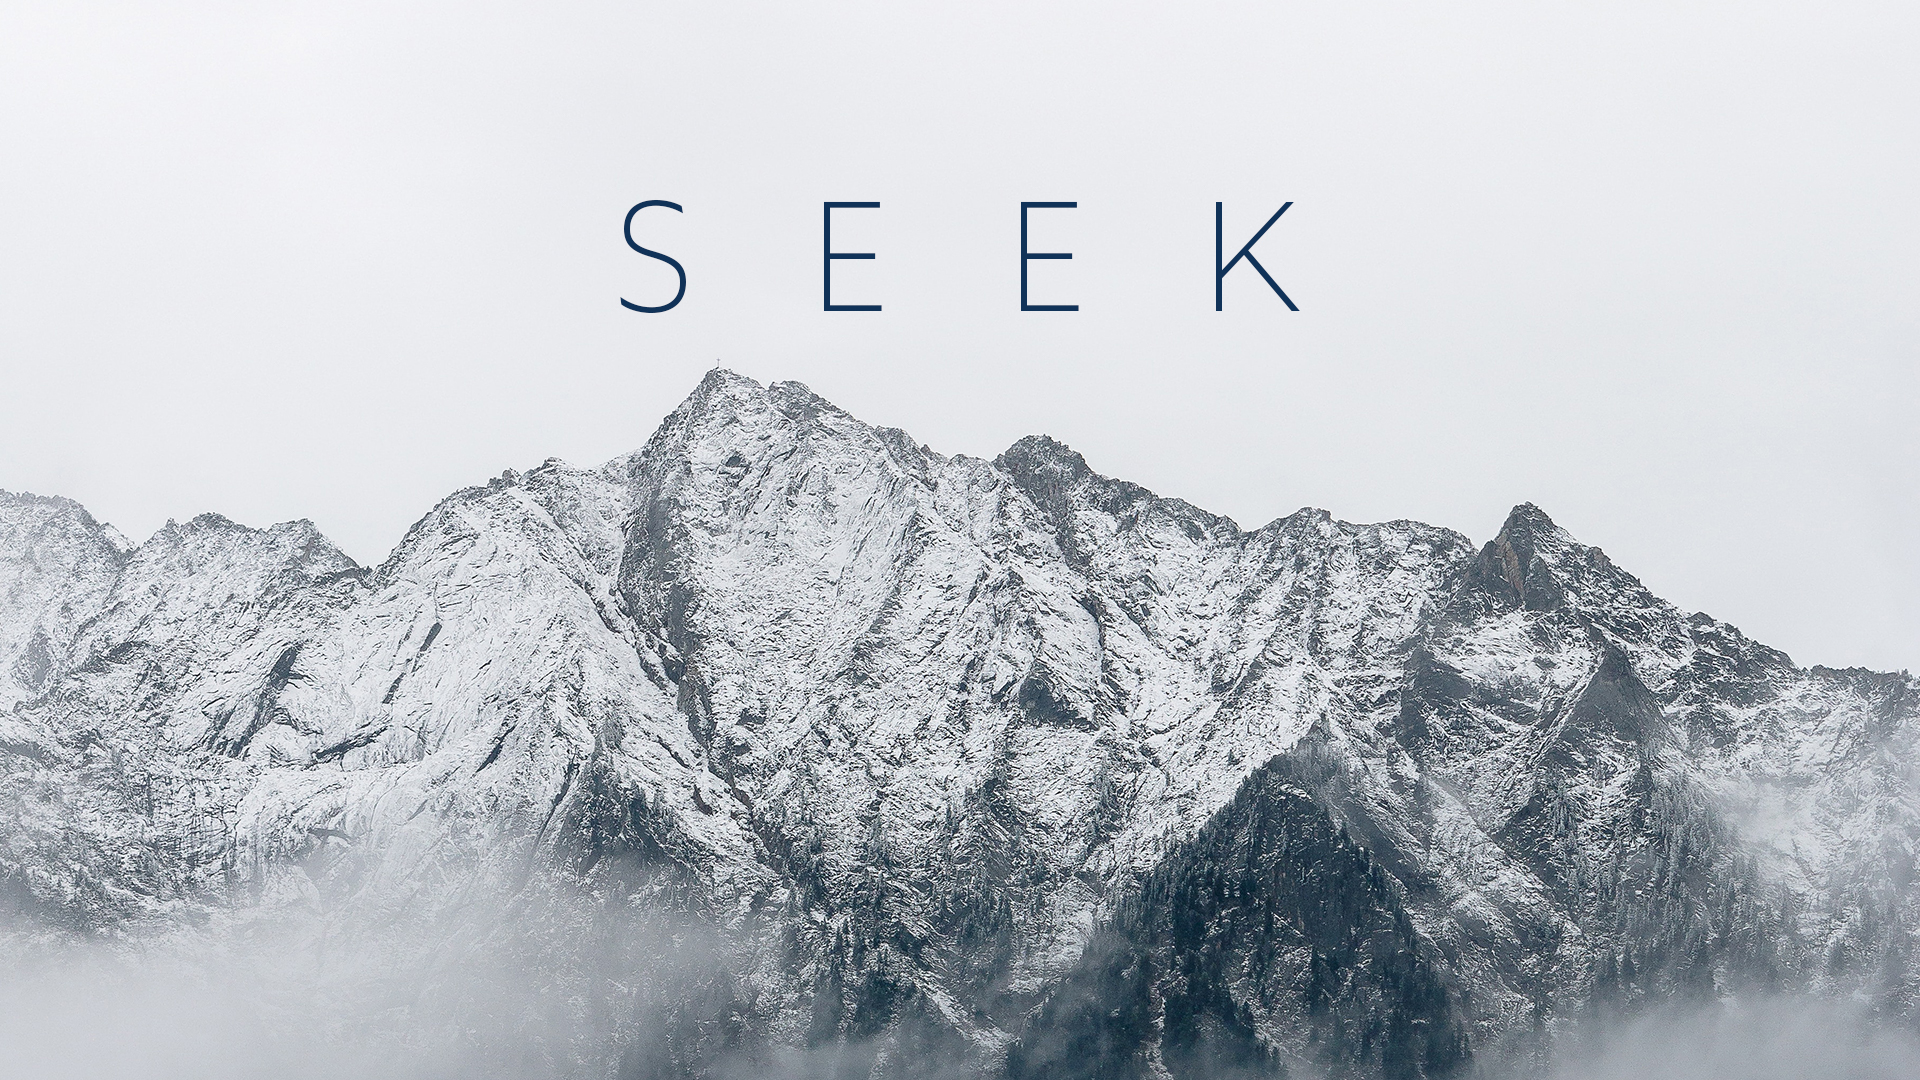 SEEK 2020 Digital Devotional